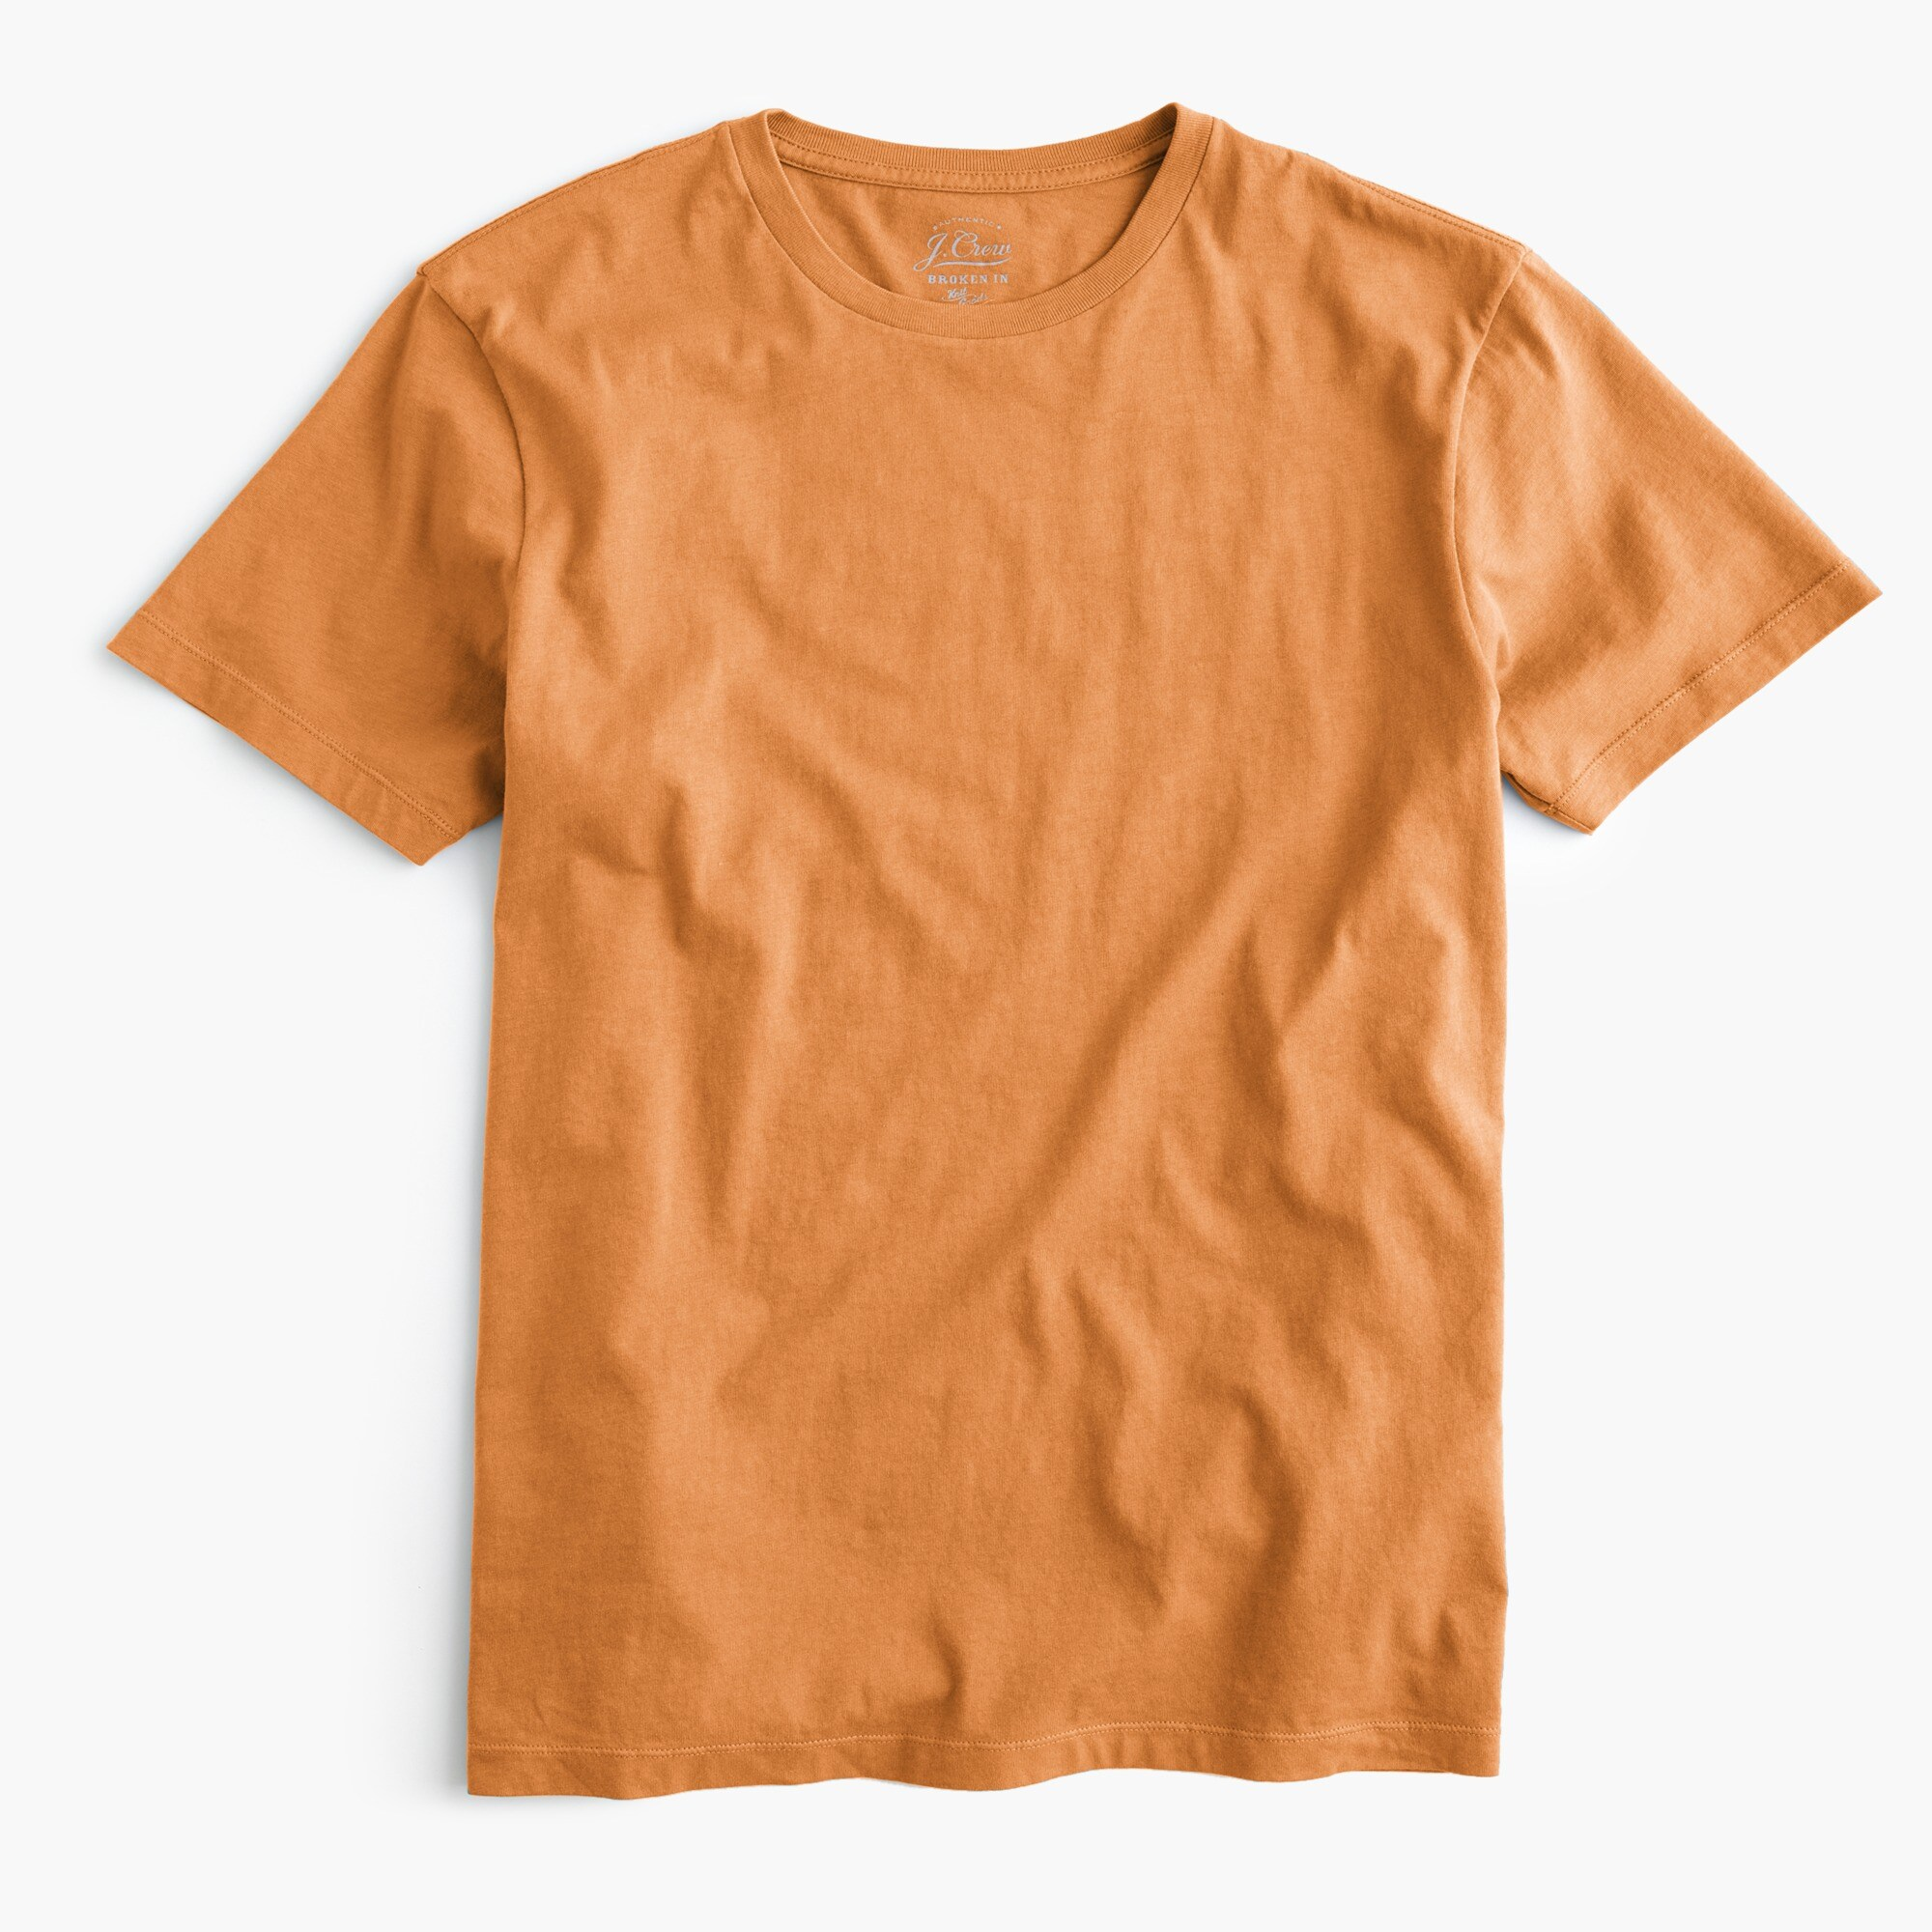 mens Broken-in T-shirt